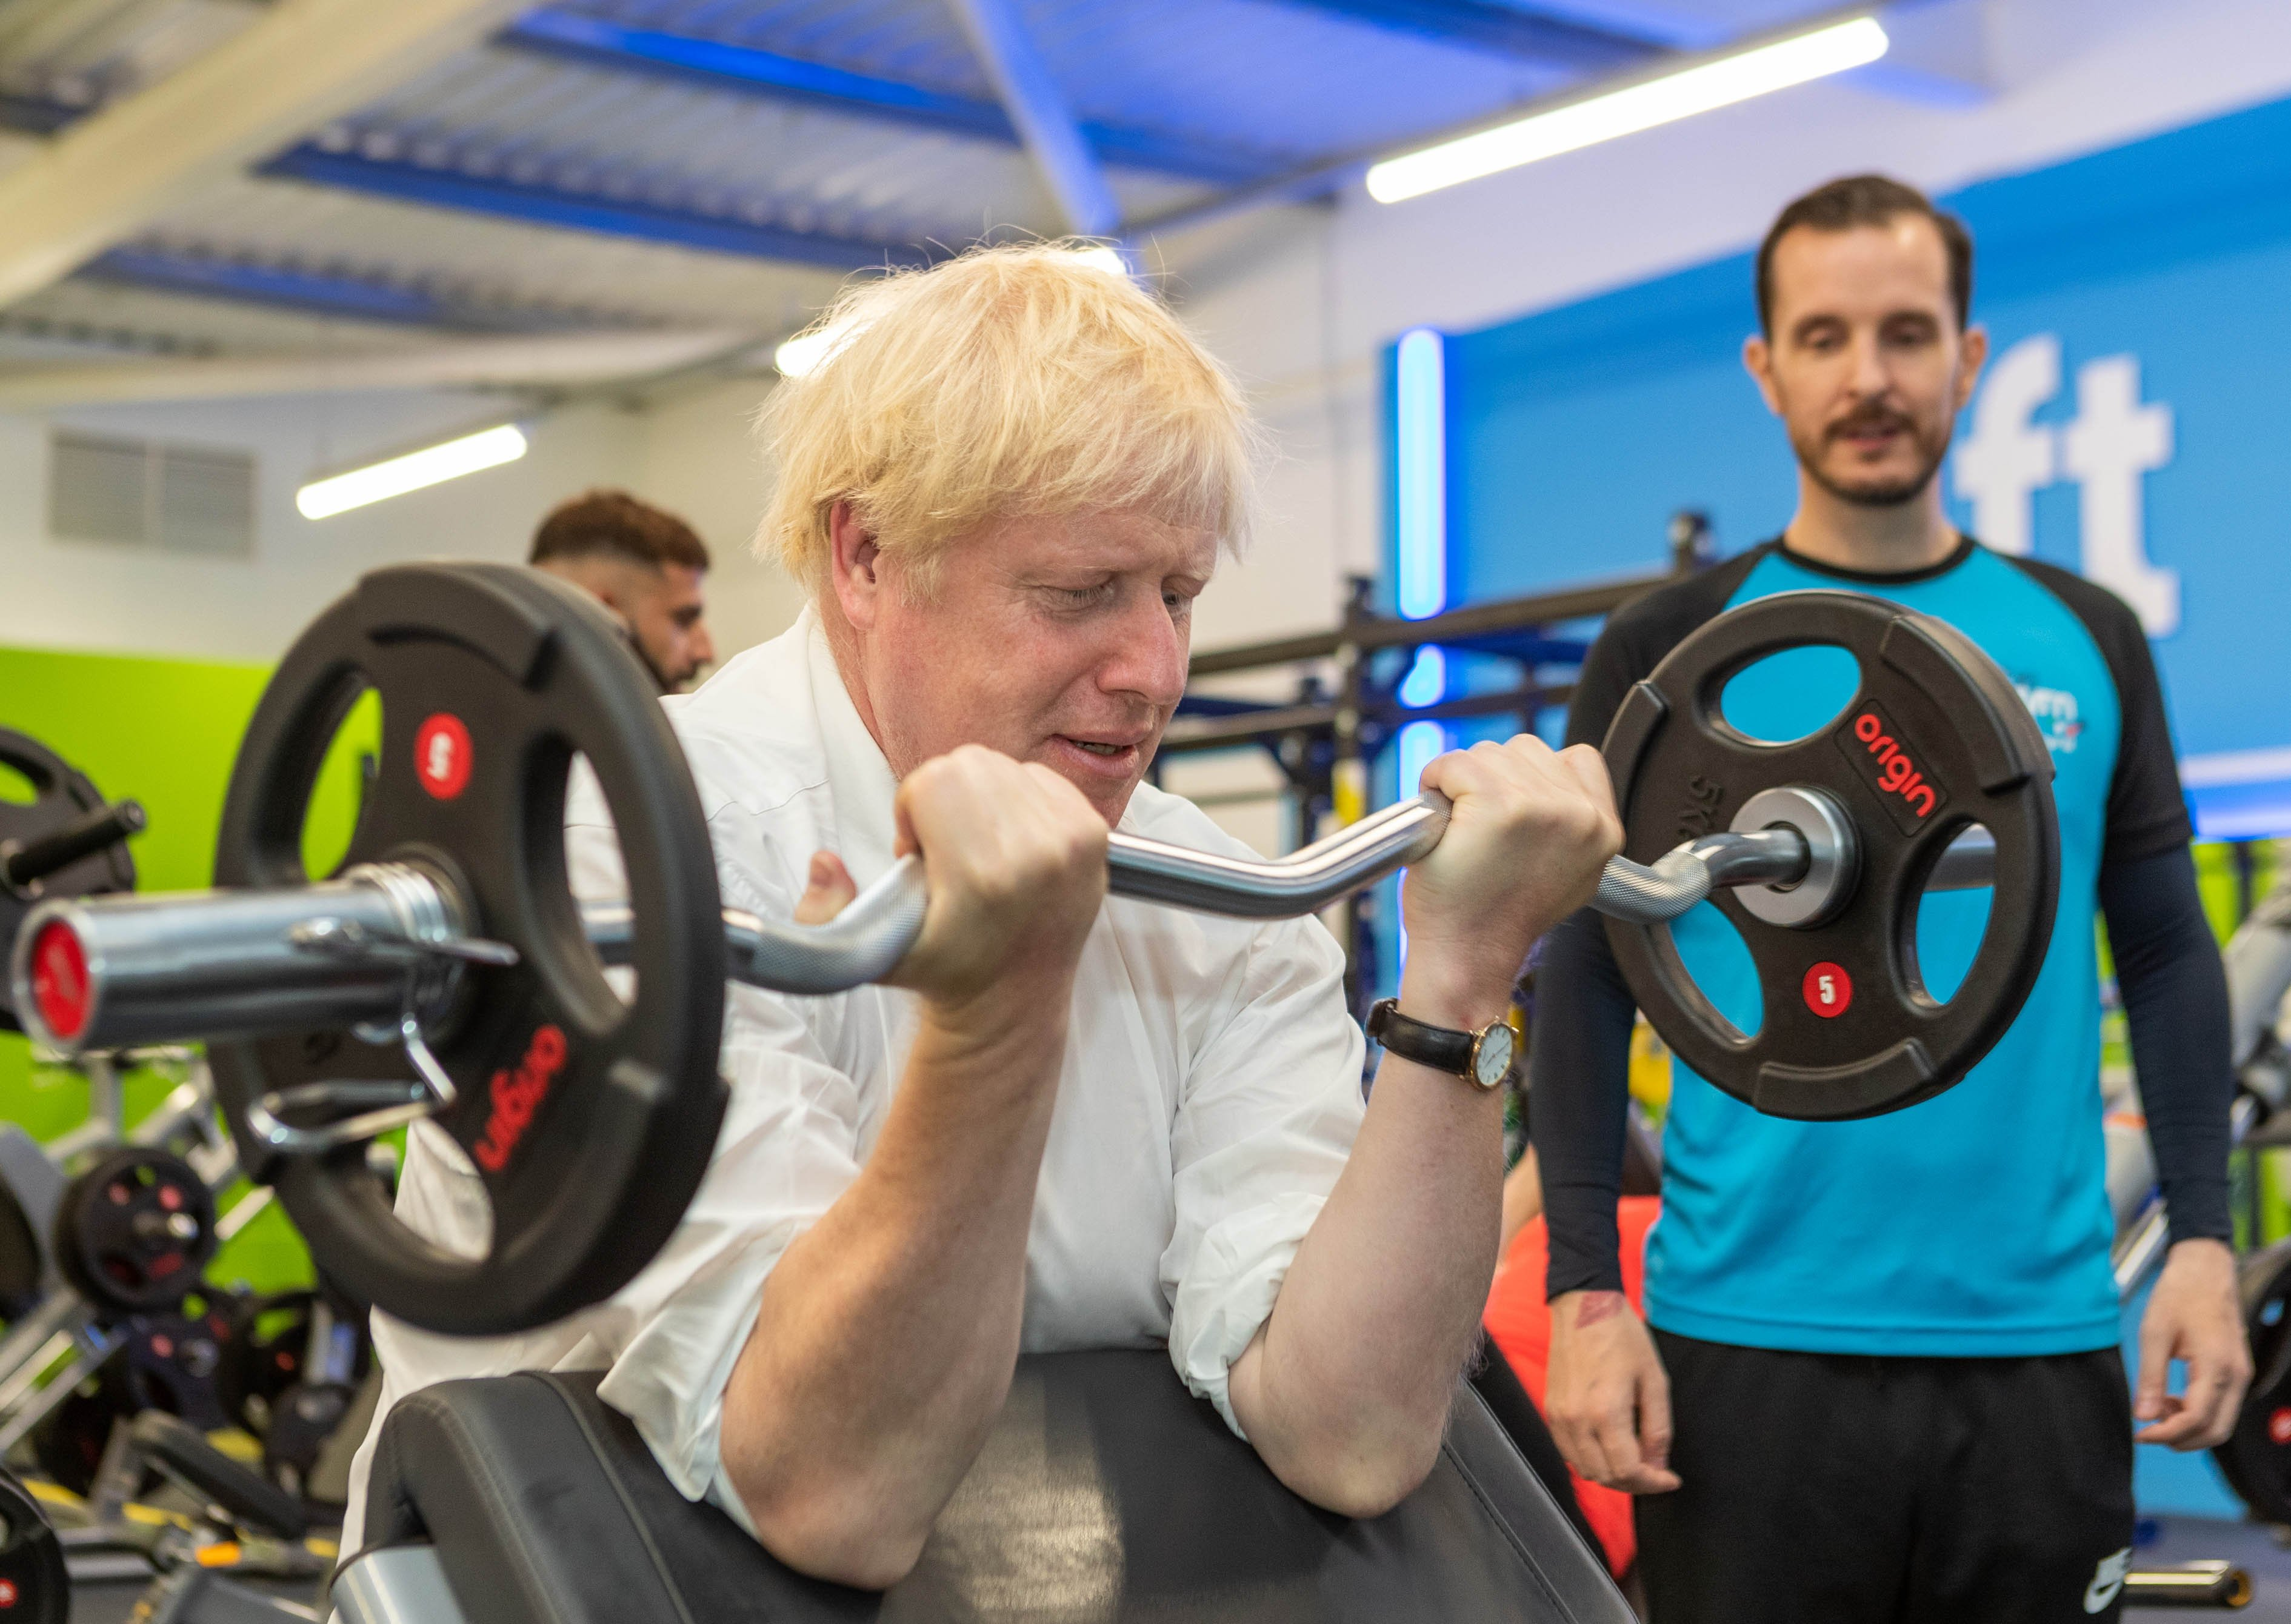 Prime Minister pumps iron during gym visit